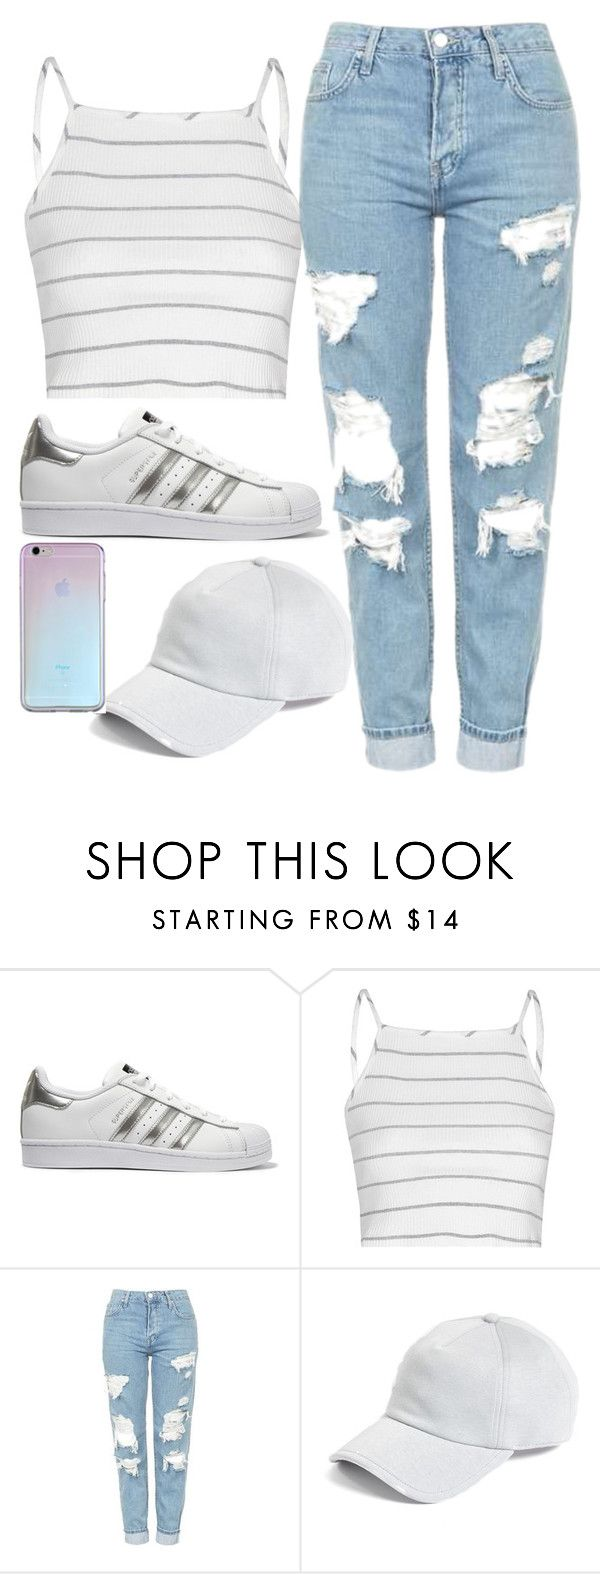 """""""Everyday casual"""" by mina4813 ❤ liked on Polyvore featuring adidas Originals, Glamorous, Topshop and rag & bone"""